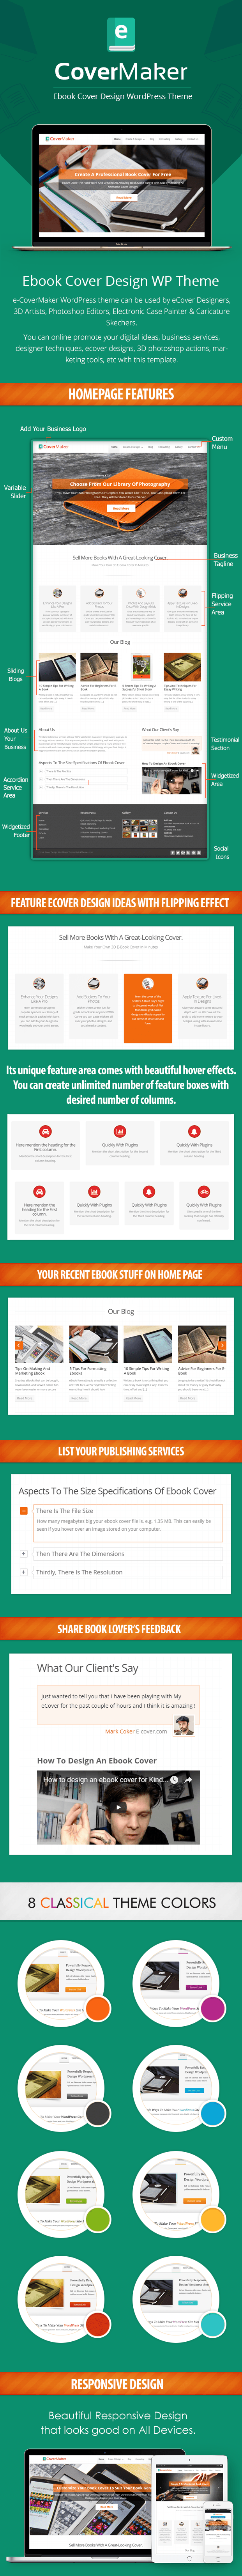 ebook-cover-design-wordpress-theme